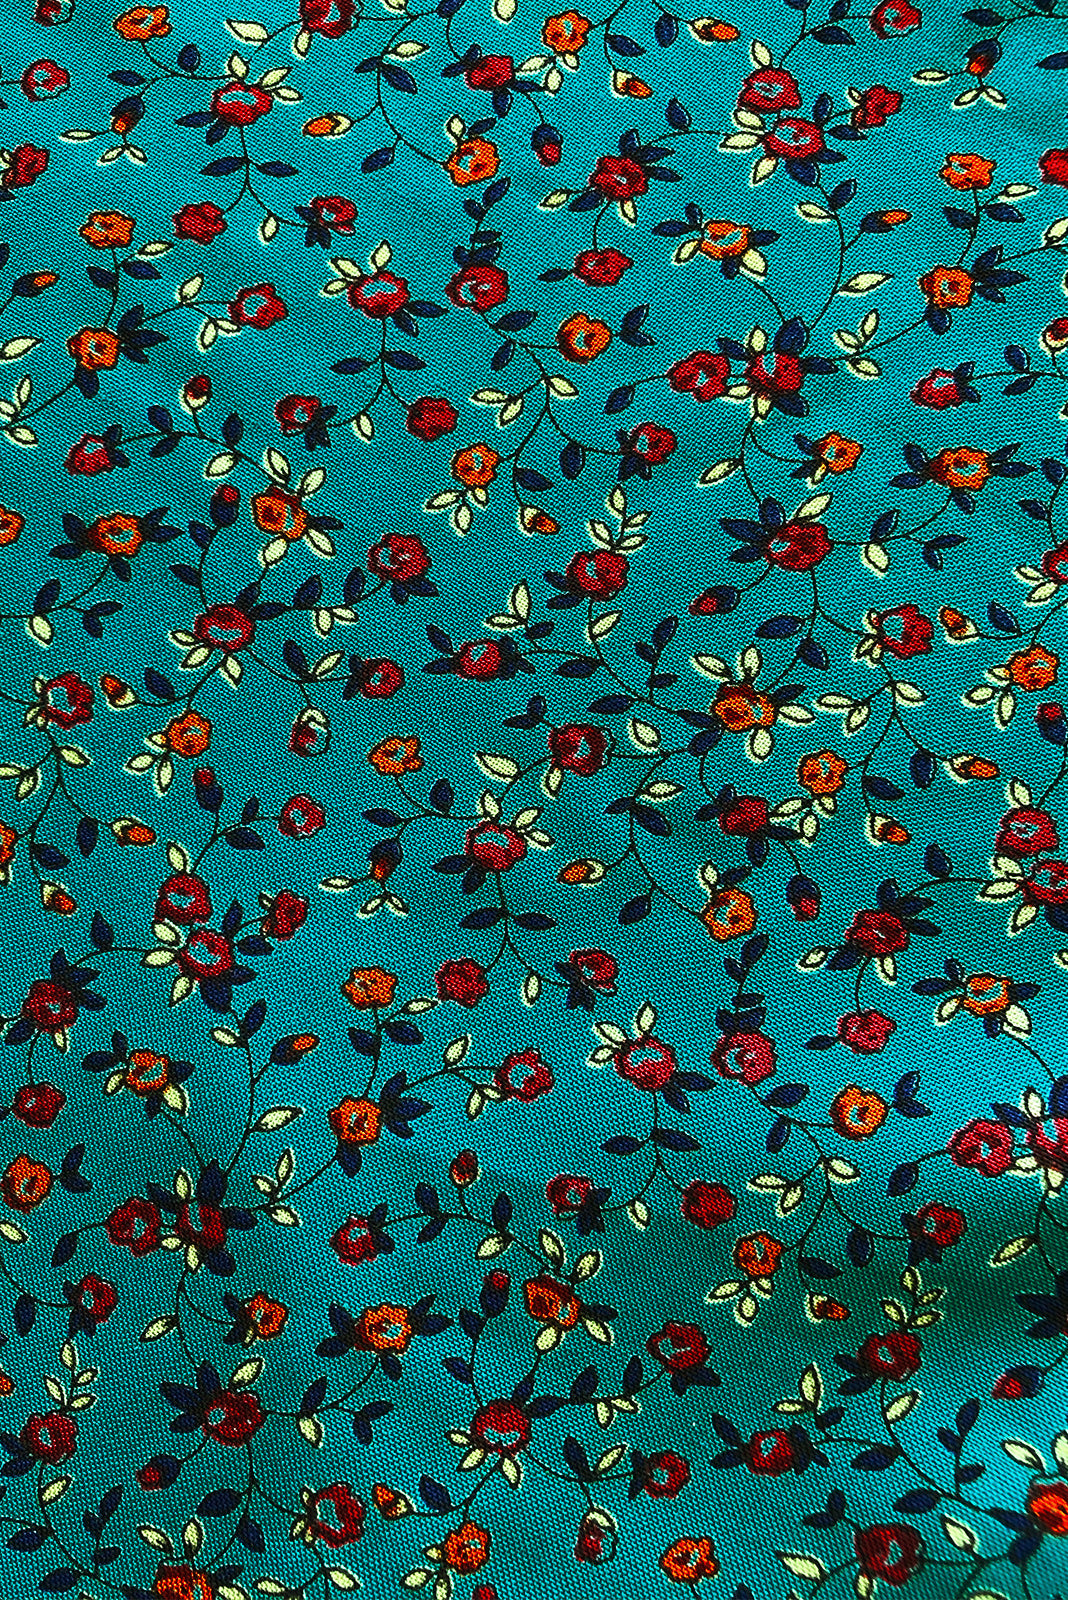 Fabric swatch, 100% woven viscose, deep teal base with petite orange, deep red, deep teal, mint floral print.